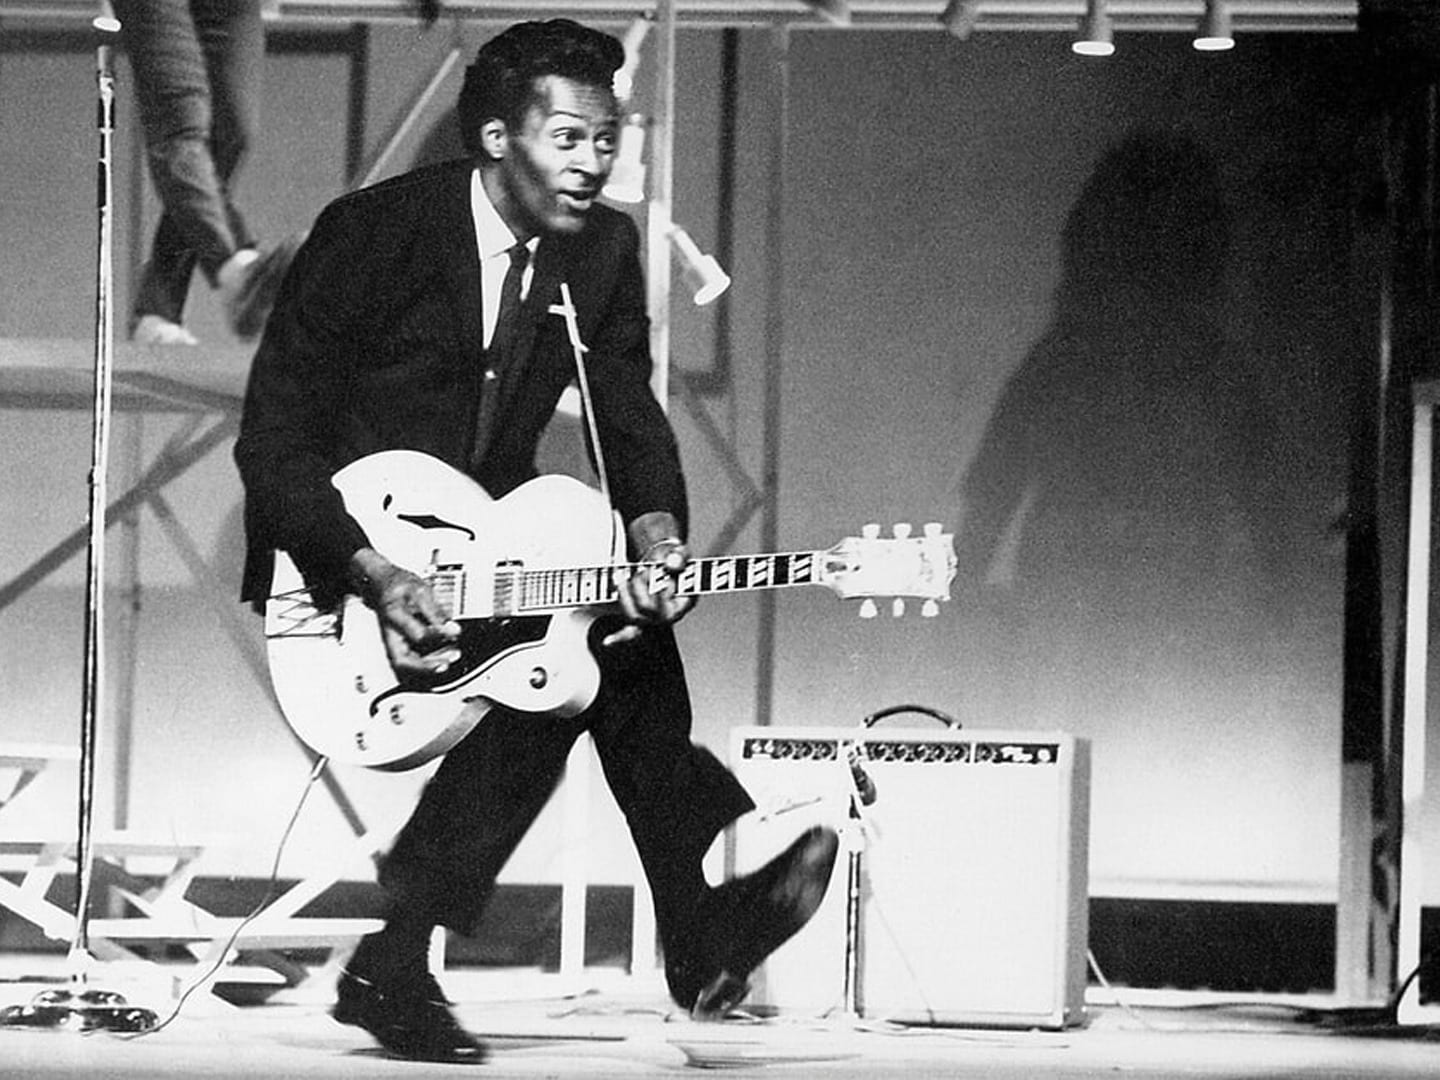 Chuck Berry performing live